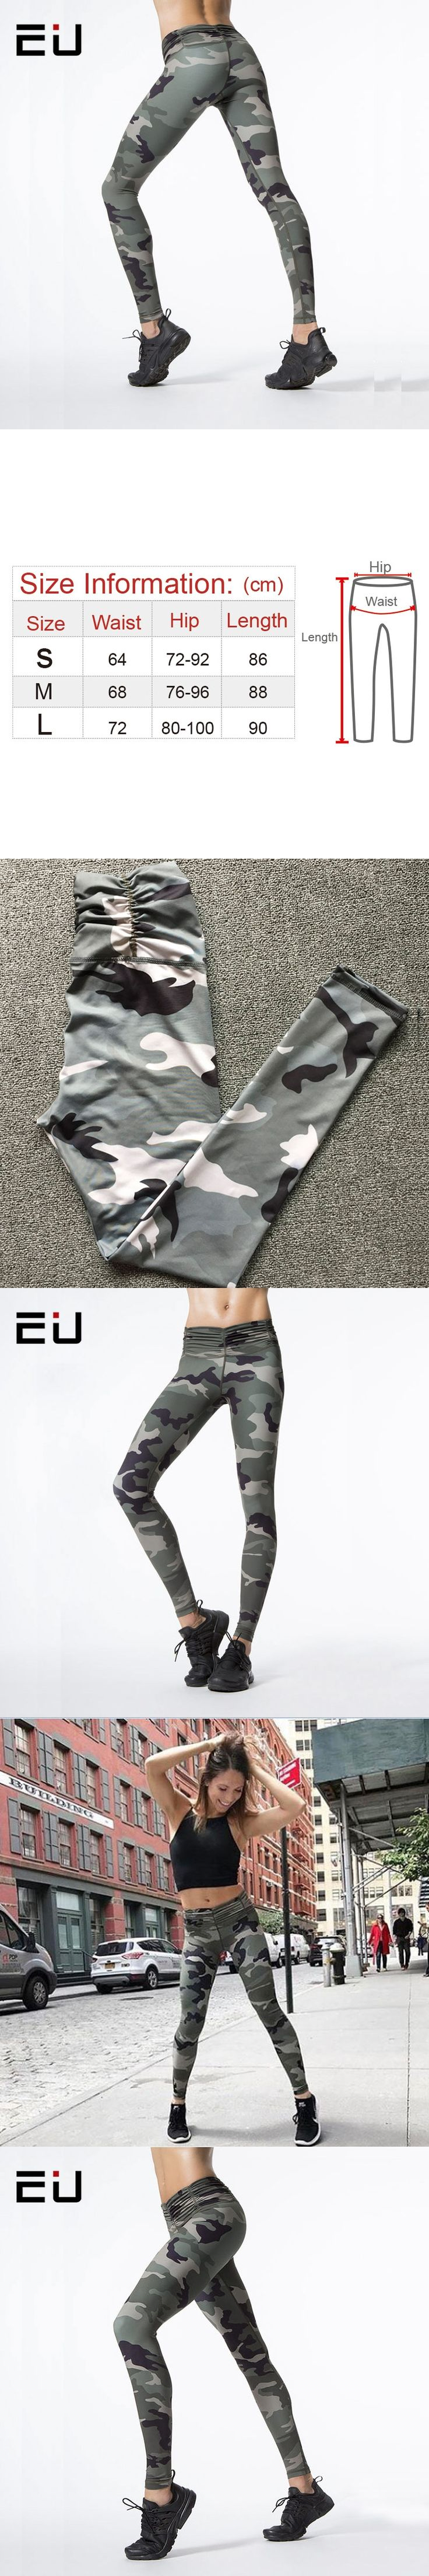 EU Women Camo Yoga Pants Women Yoga Leggings Camouflage High Waist Running Tights Women High Quality Fitness Sport Leggings